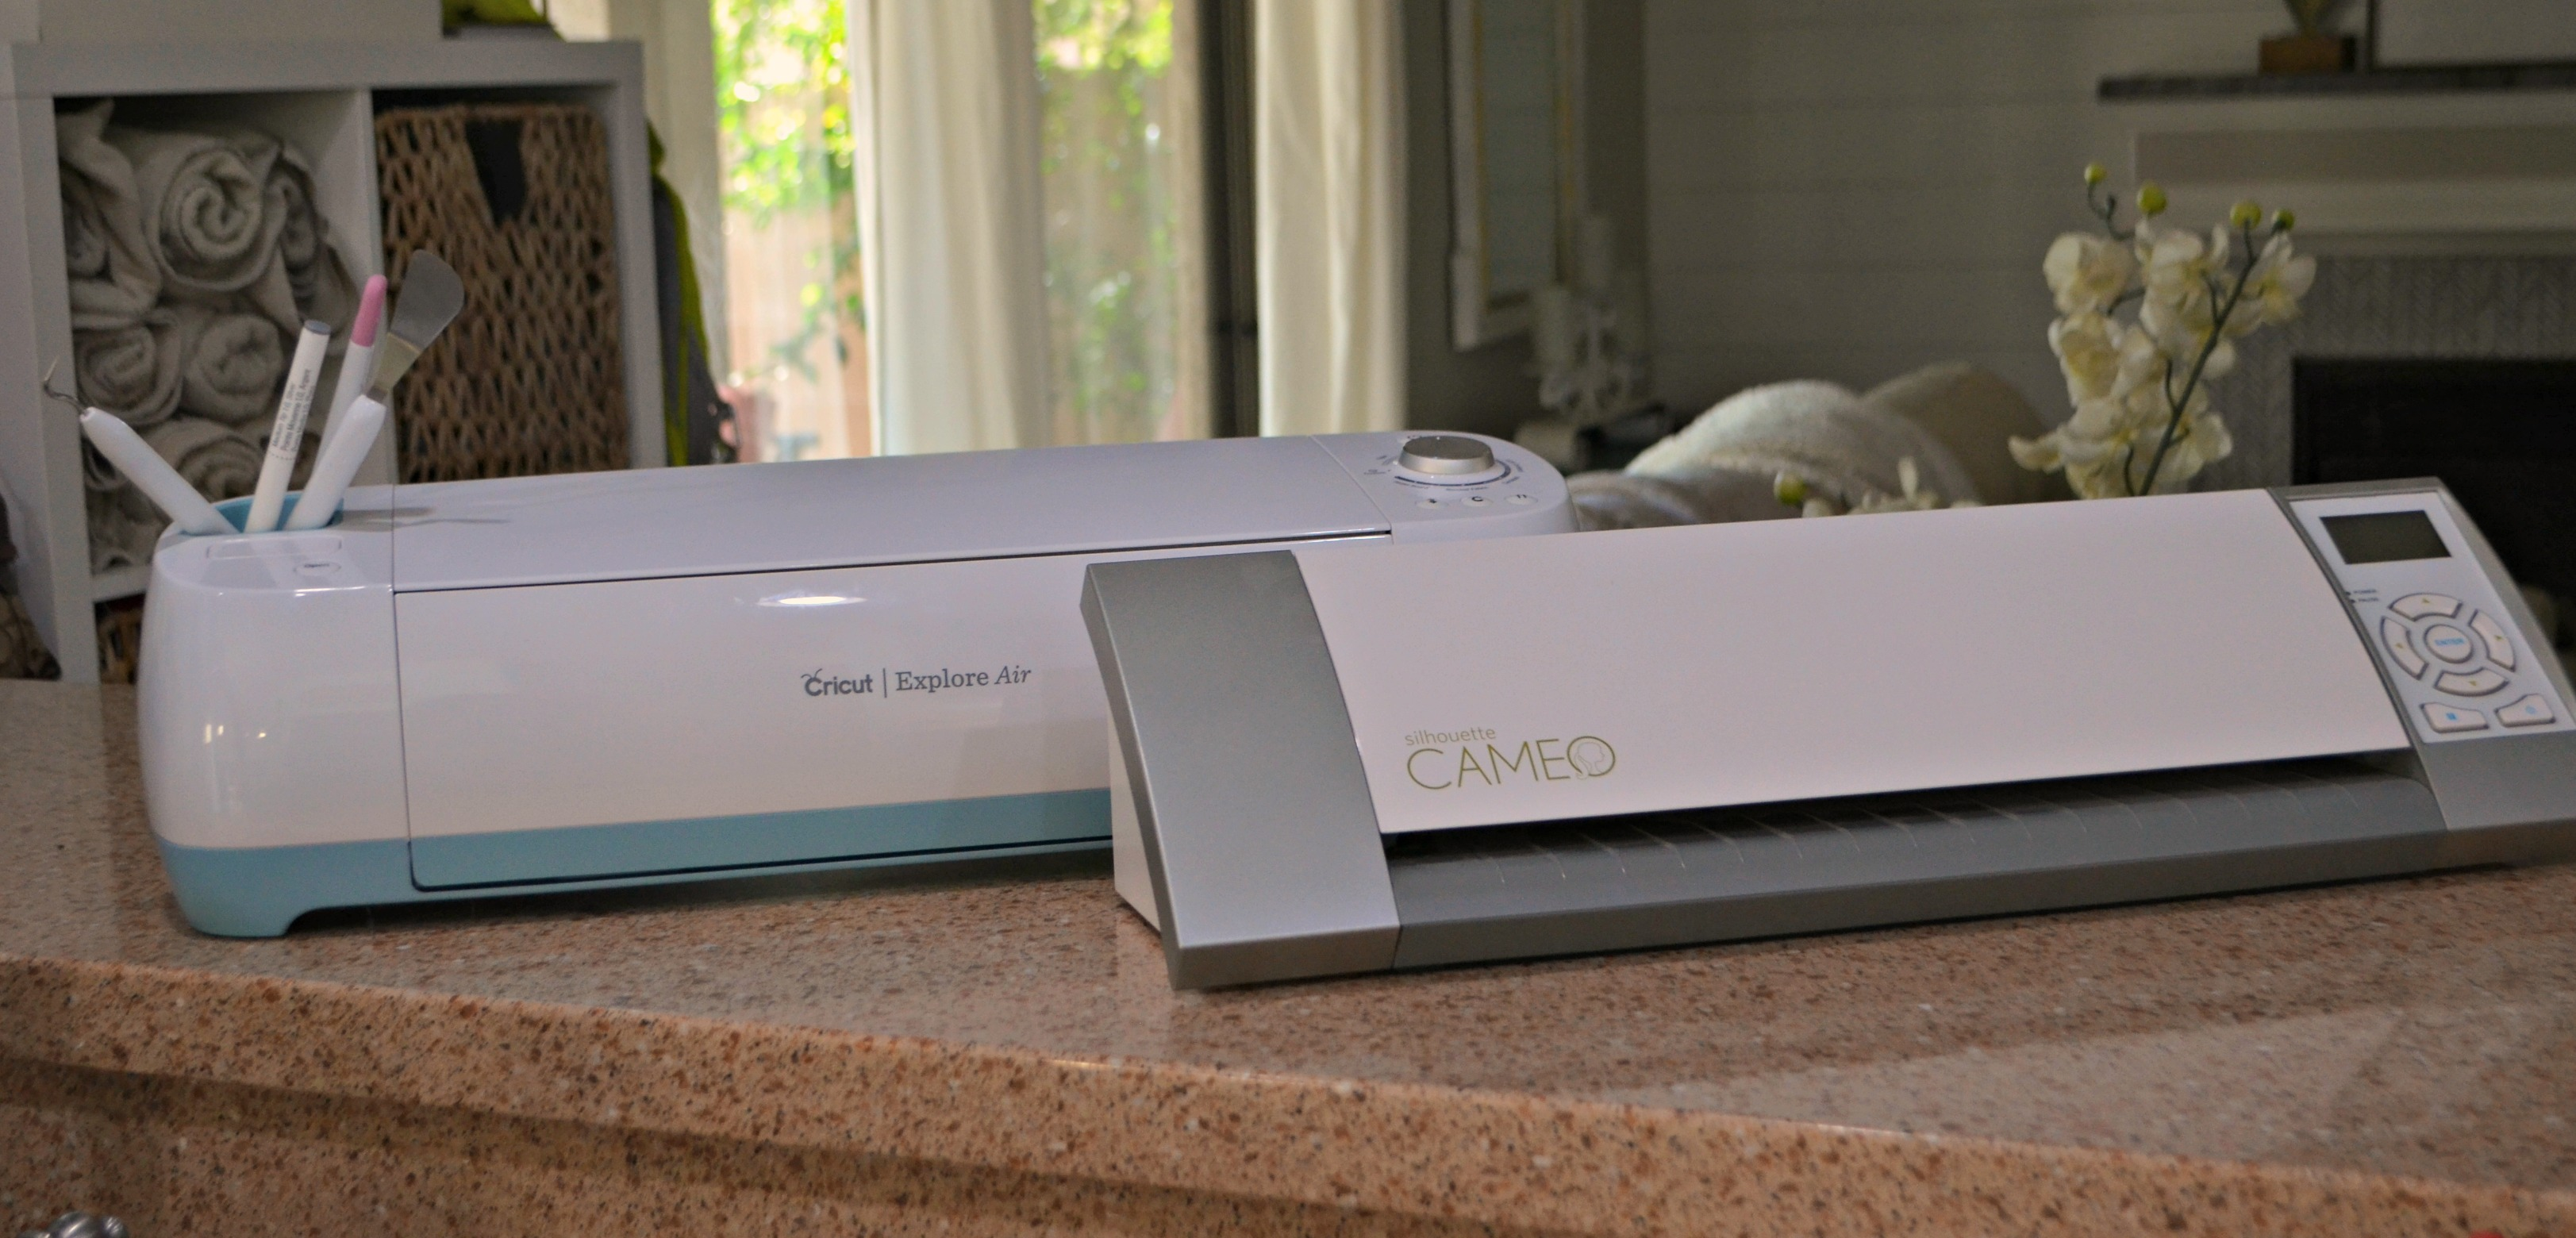 Cricut and Silhouette are both about the size of a large, compact printer.